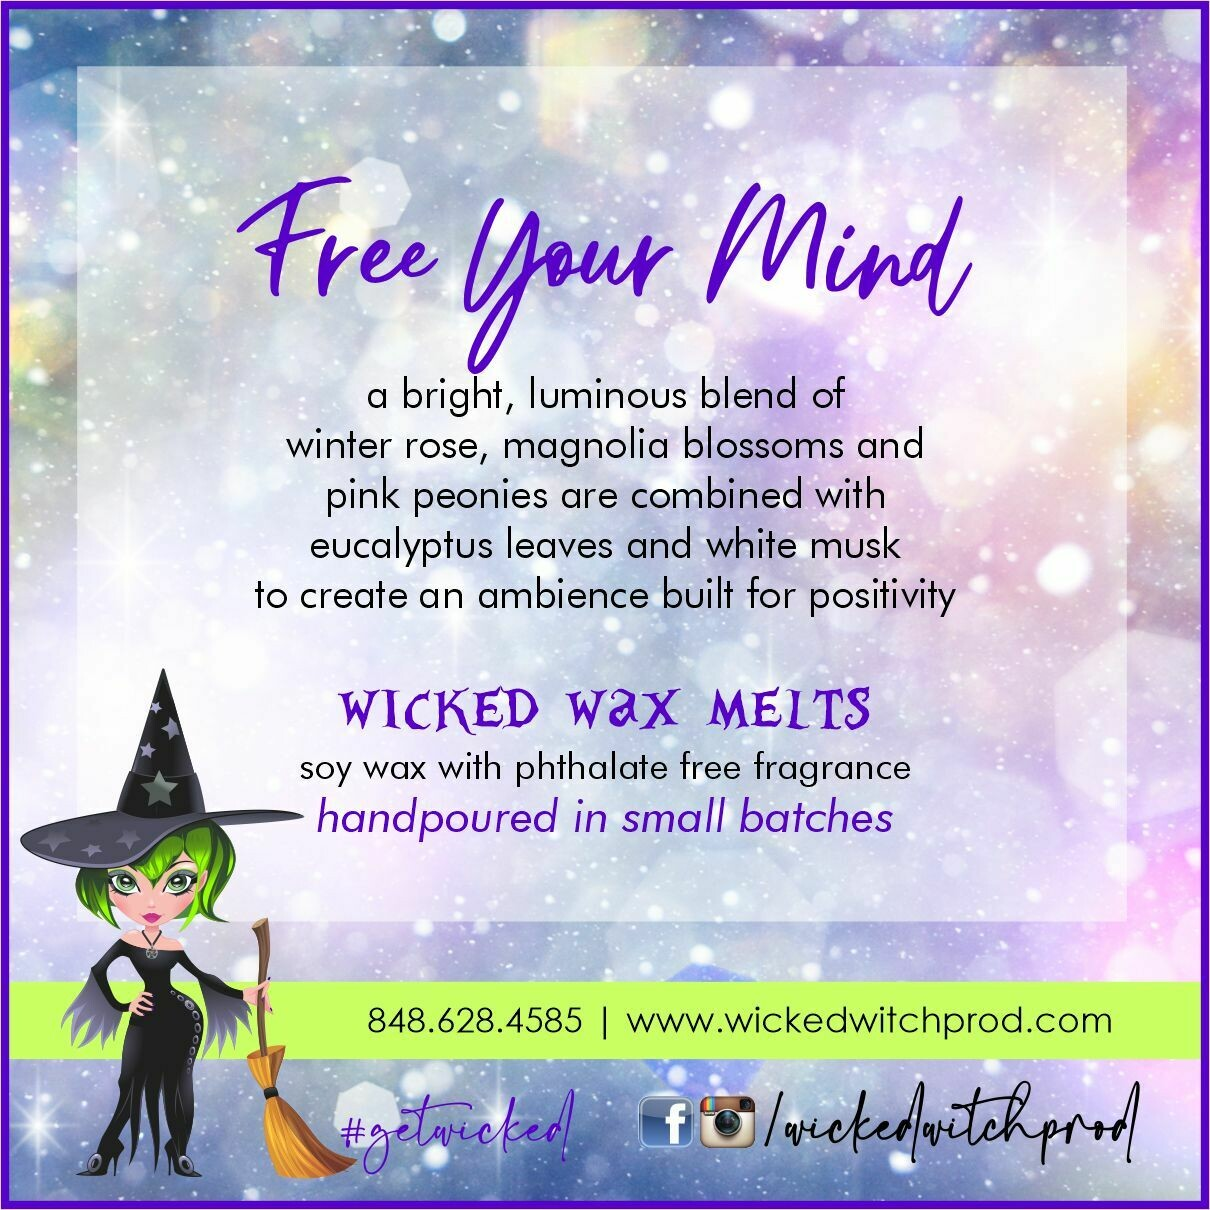 Free Your Mind Wicked Wax Melts